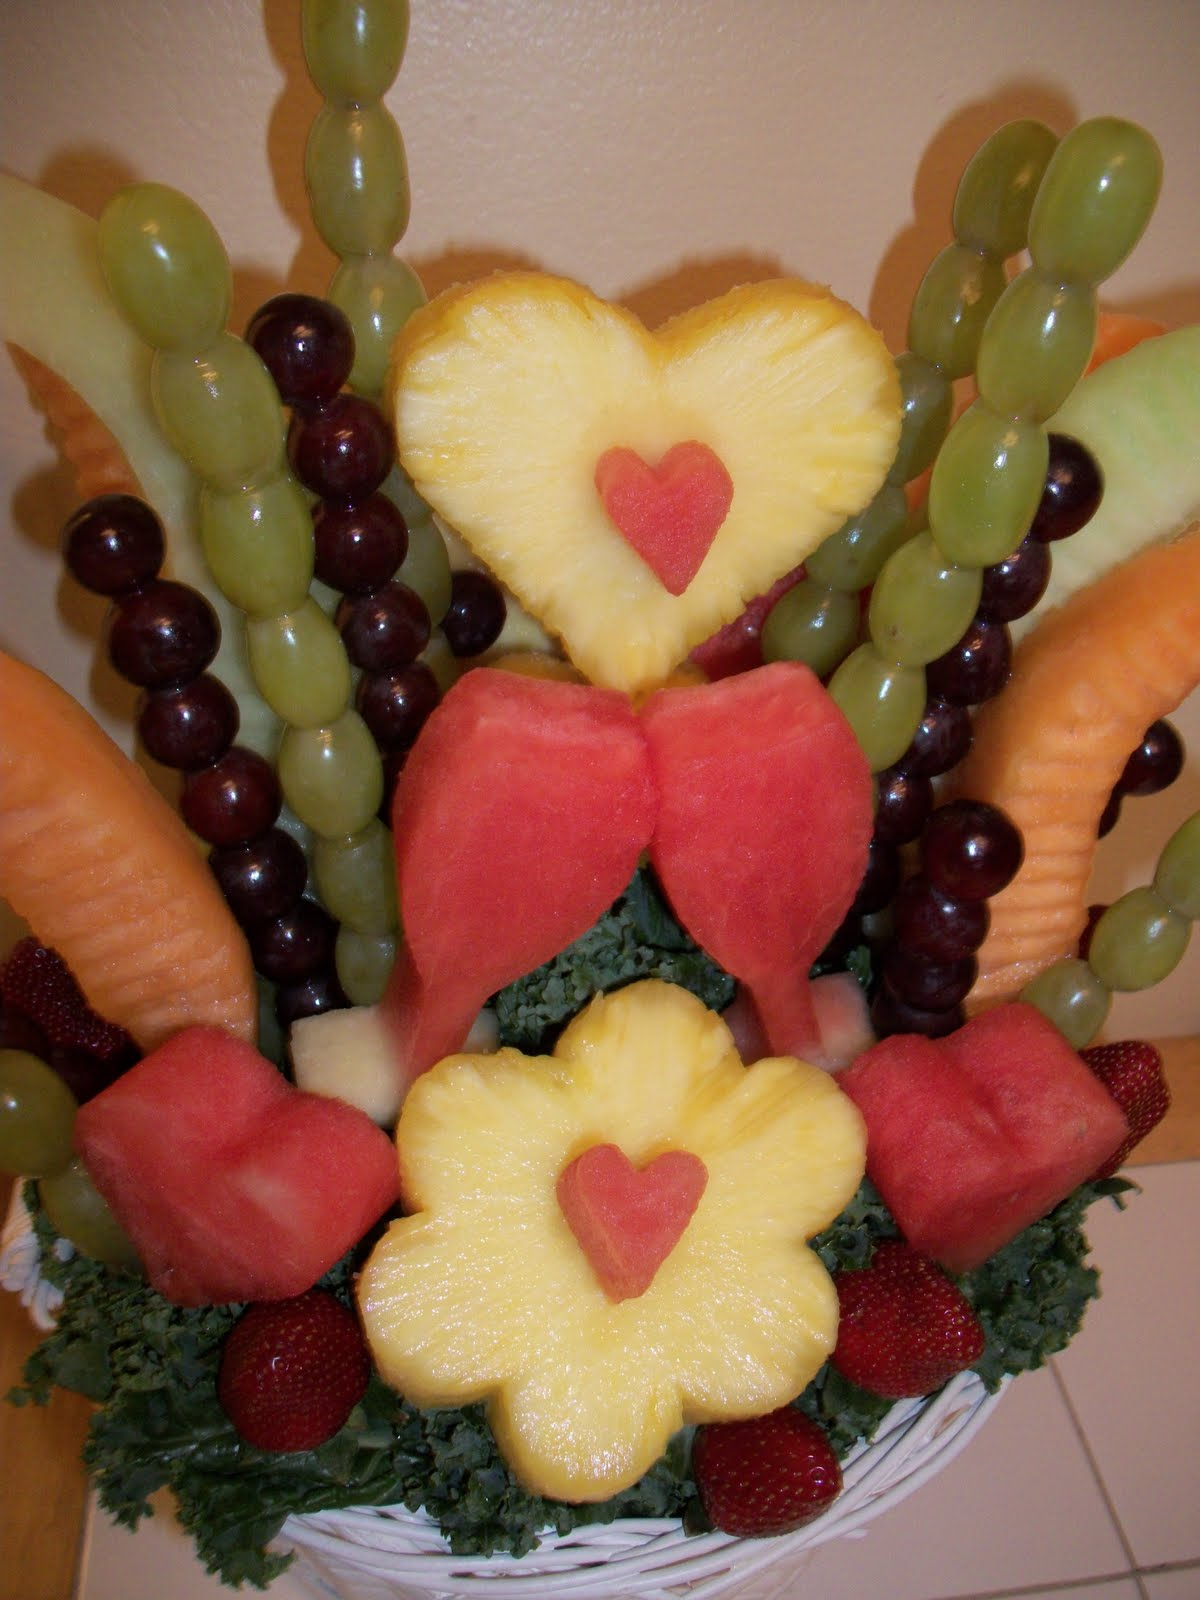 Fruit Carving Ve able Carving Garnishes and Edible Arrangements Fruit Fl